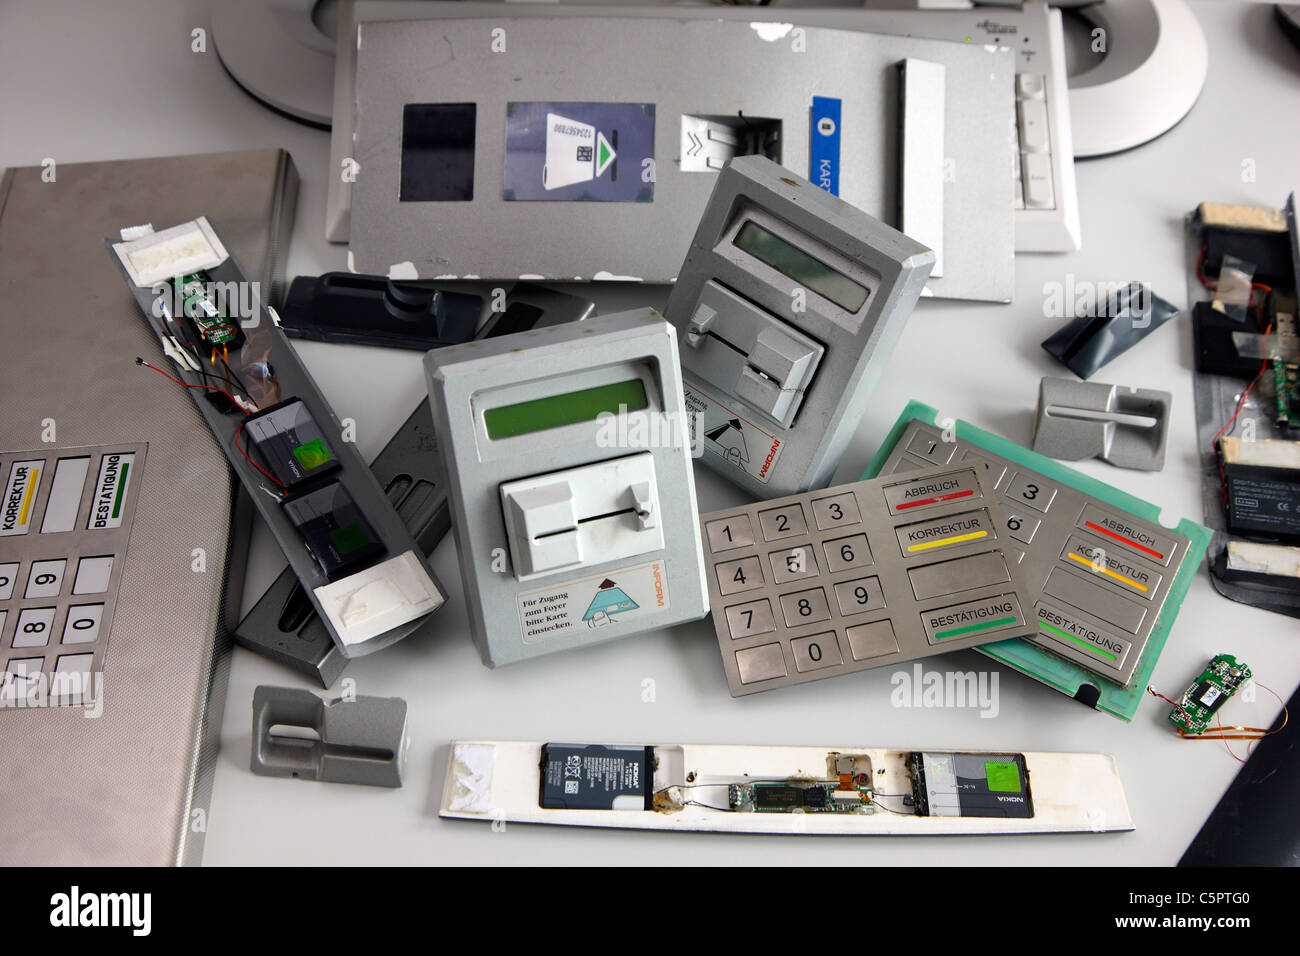 Skimming devices for manipulation a cash machine, ATM. MIcro cameras or keyboards register the PIN code of a bank - Stock Image